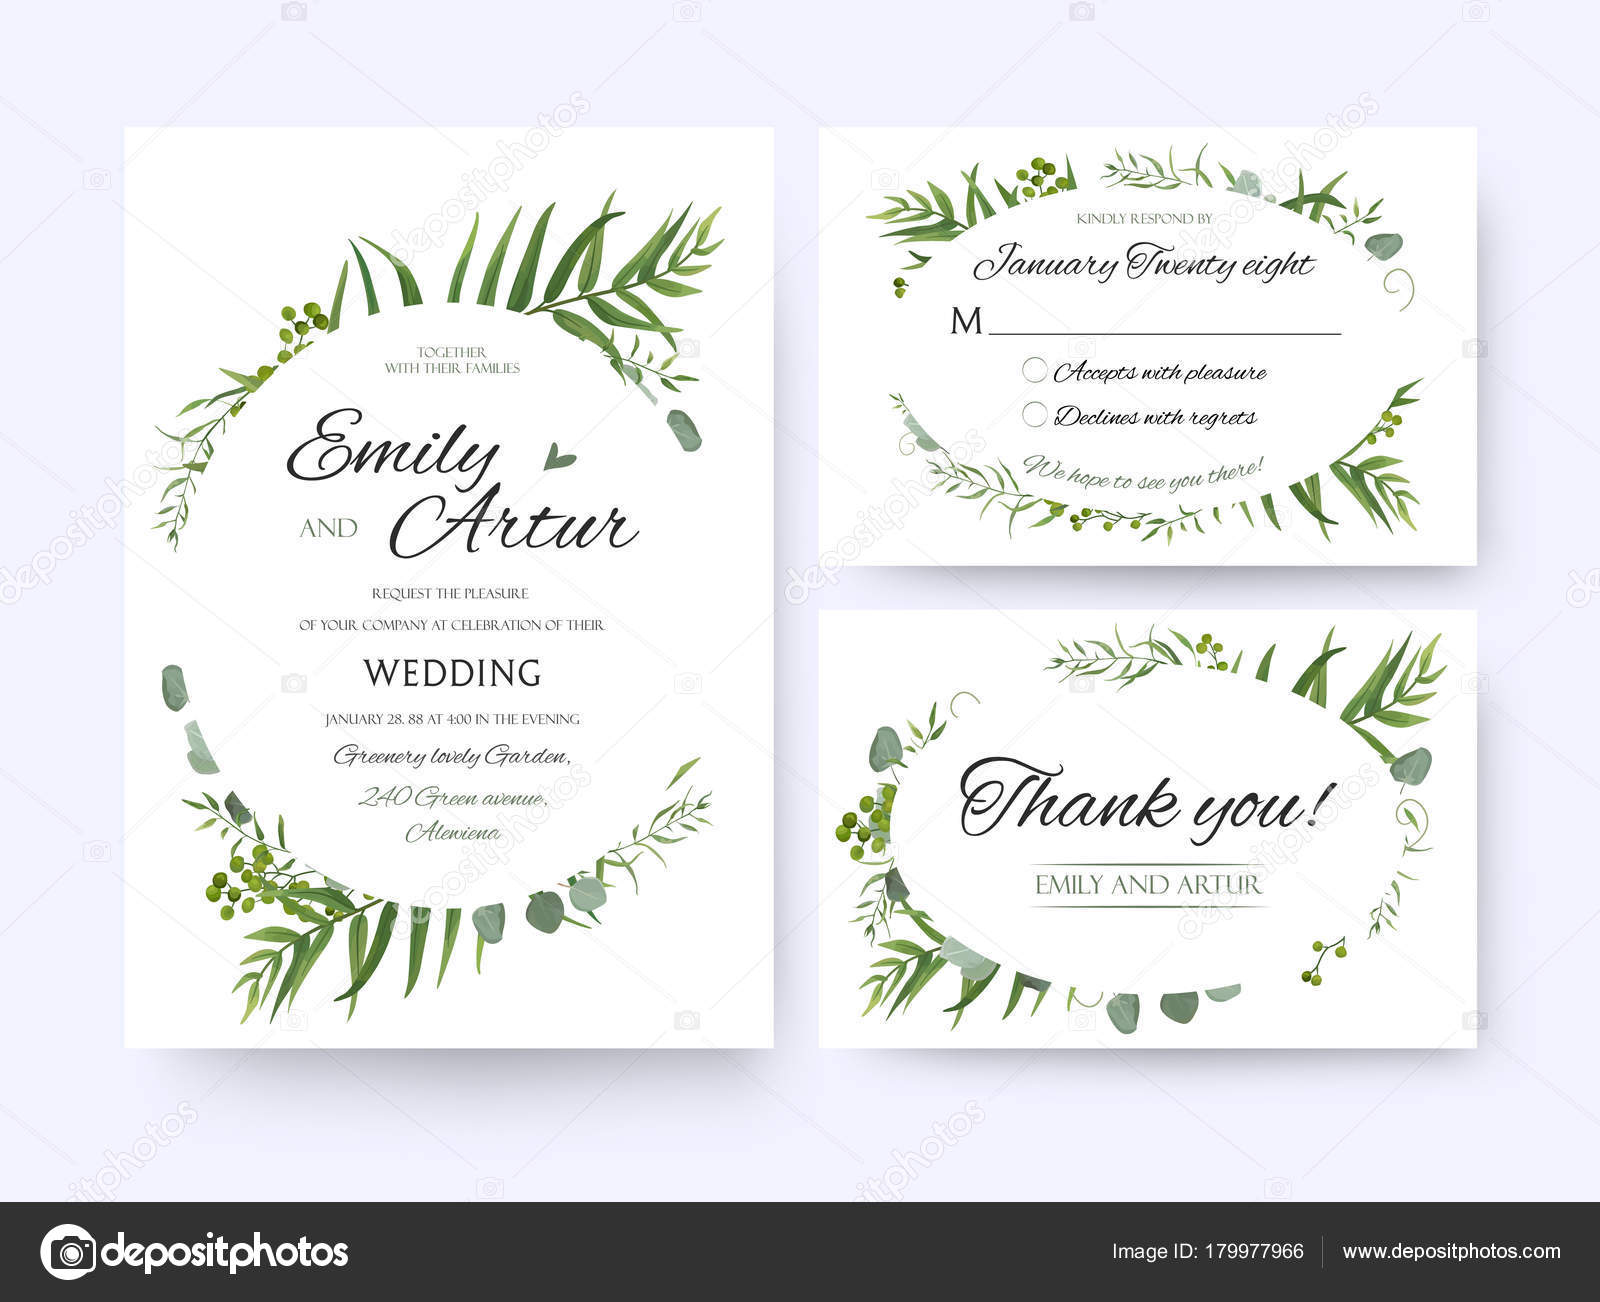 Wedding invite invitation rsvp thank you card vector floral